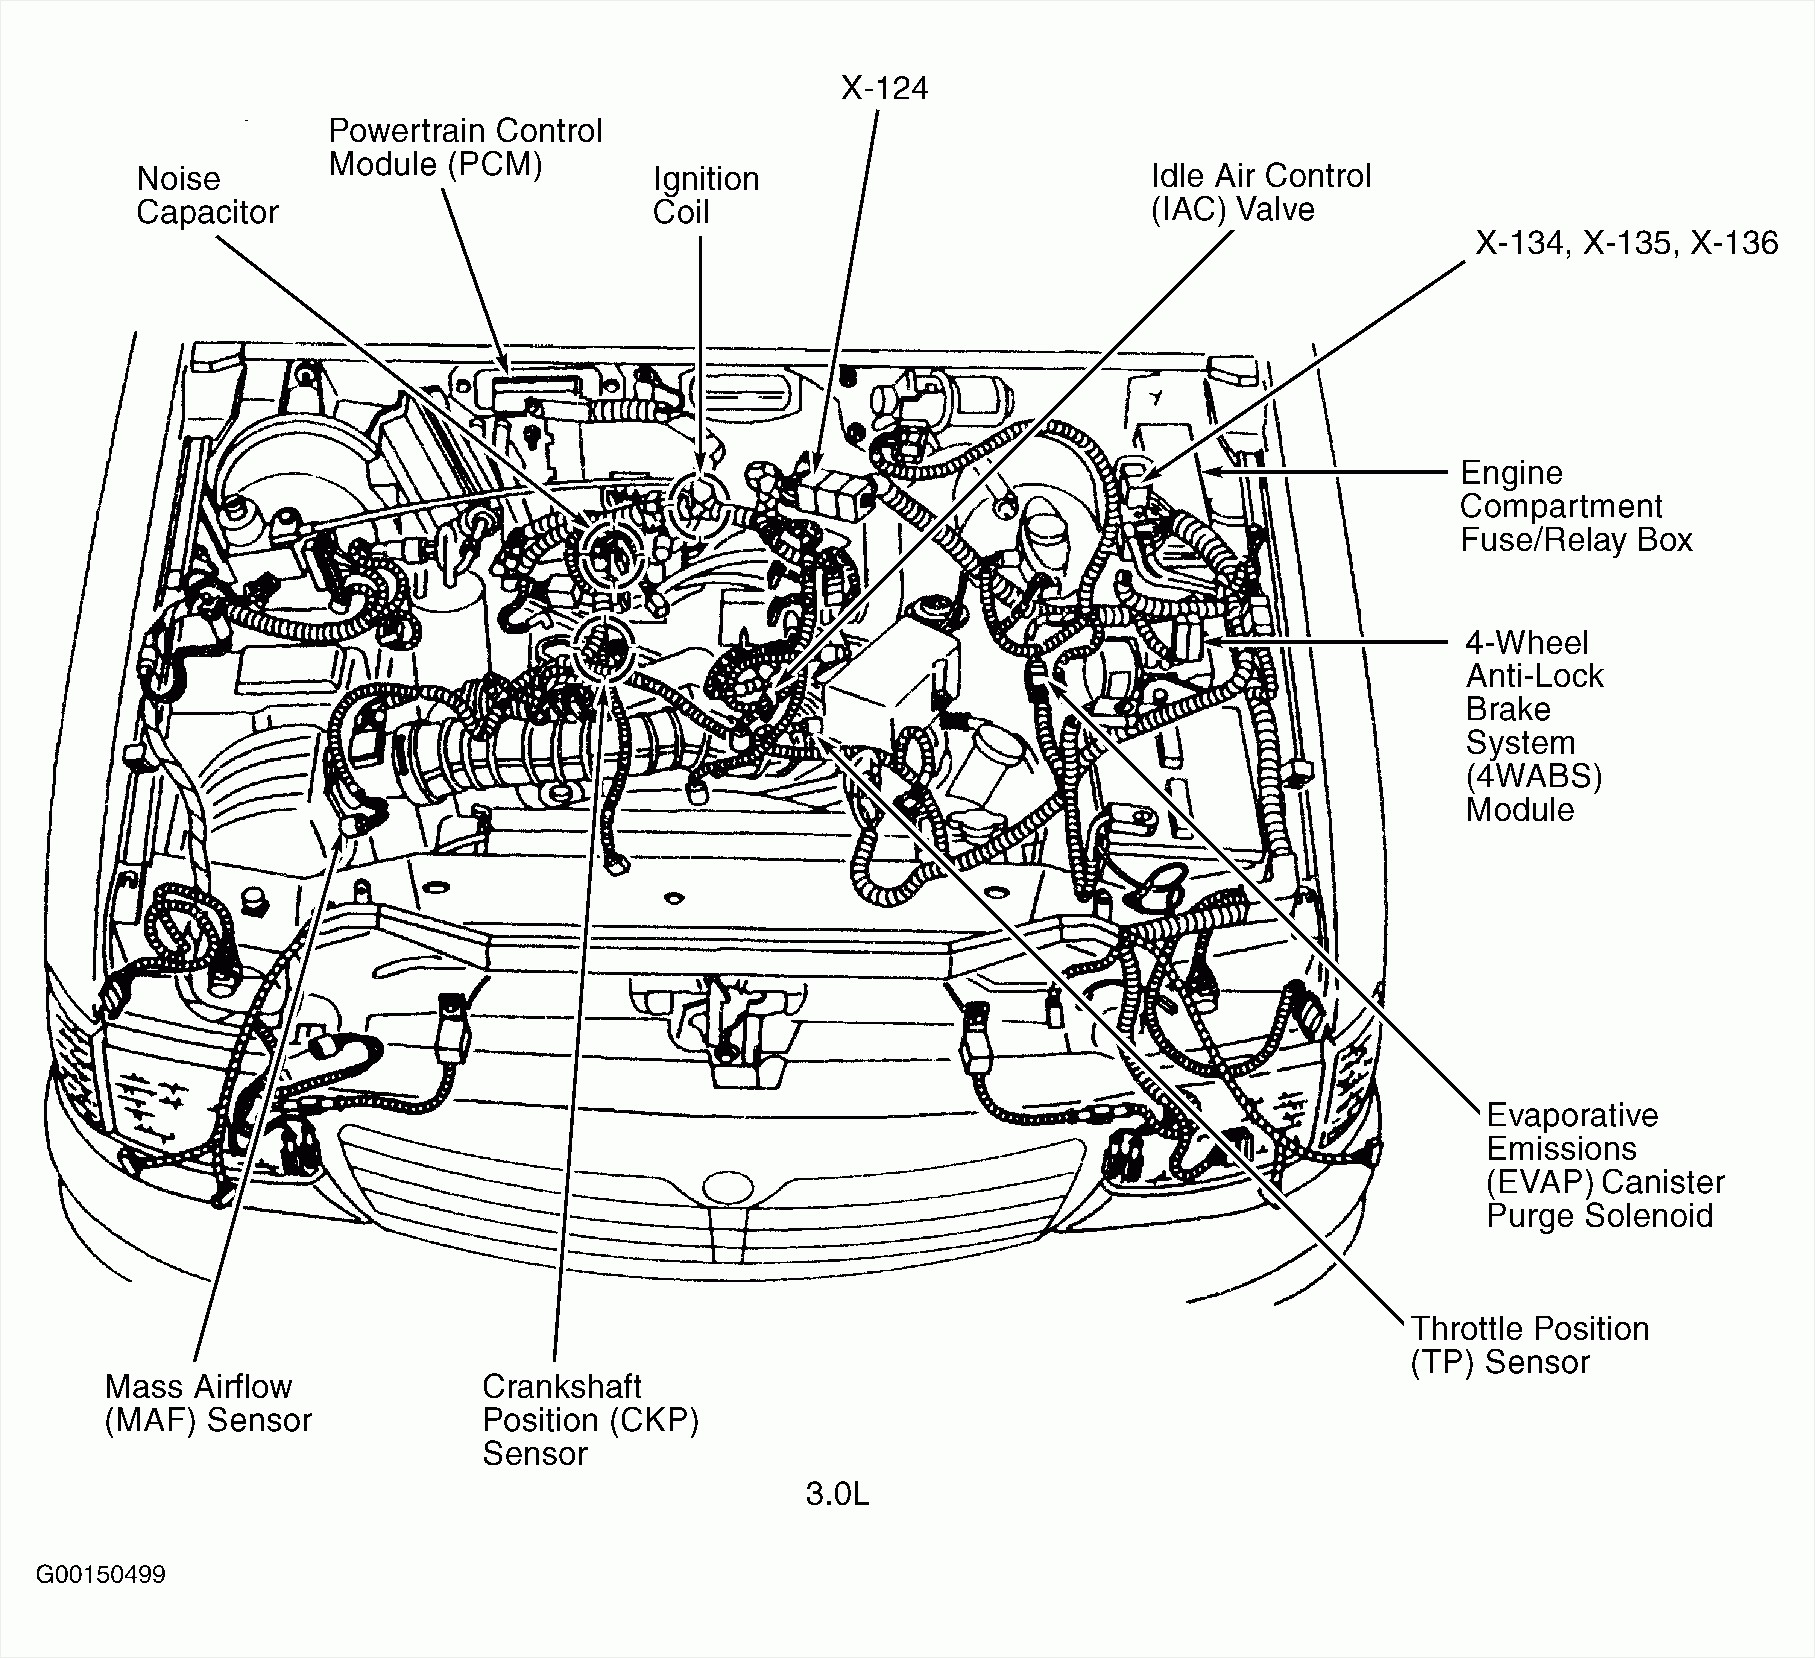 Toyota 3 0 V6 Engine Wiring Diagram on 2003 mustang v6 exhaust diagram